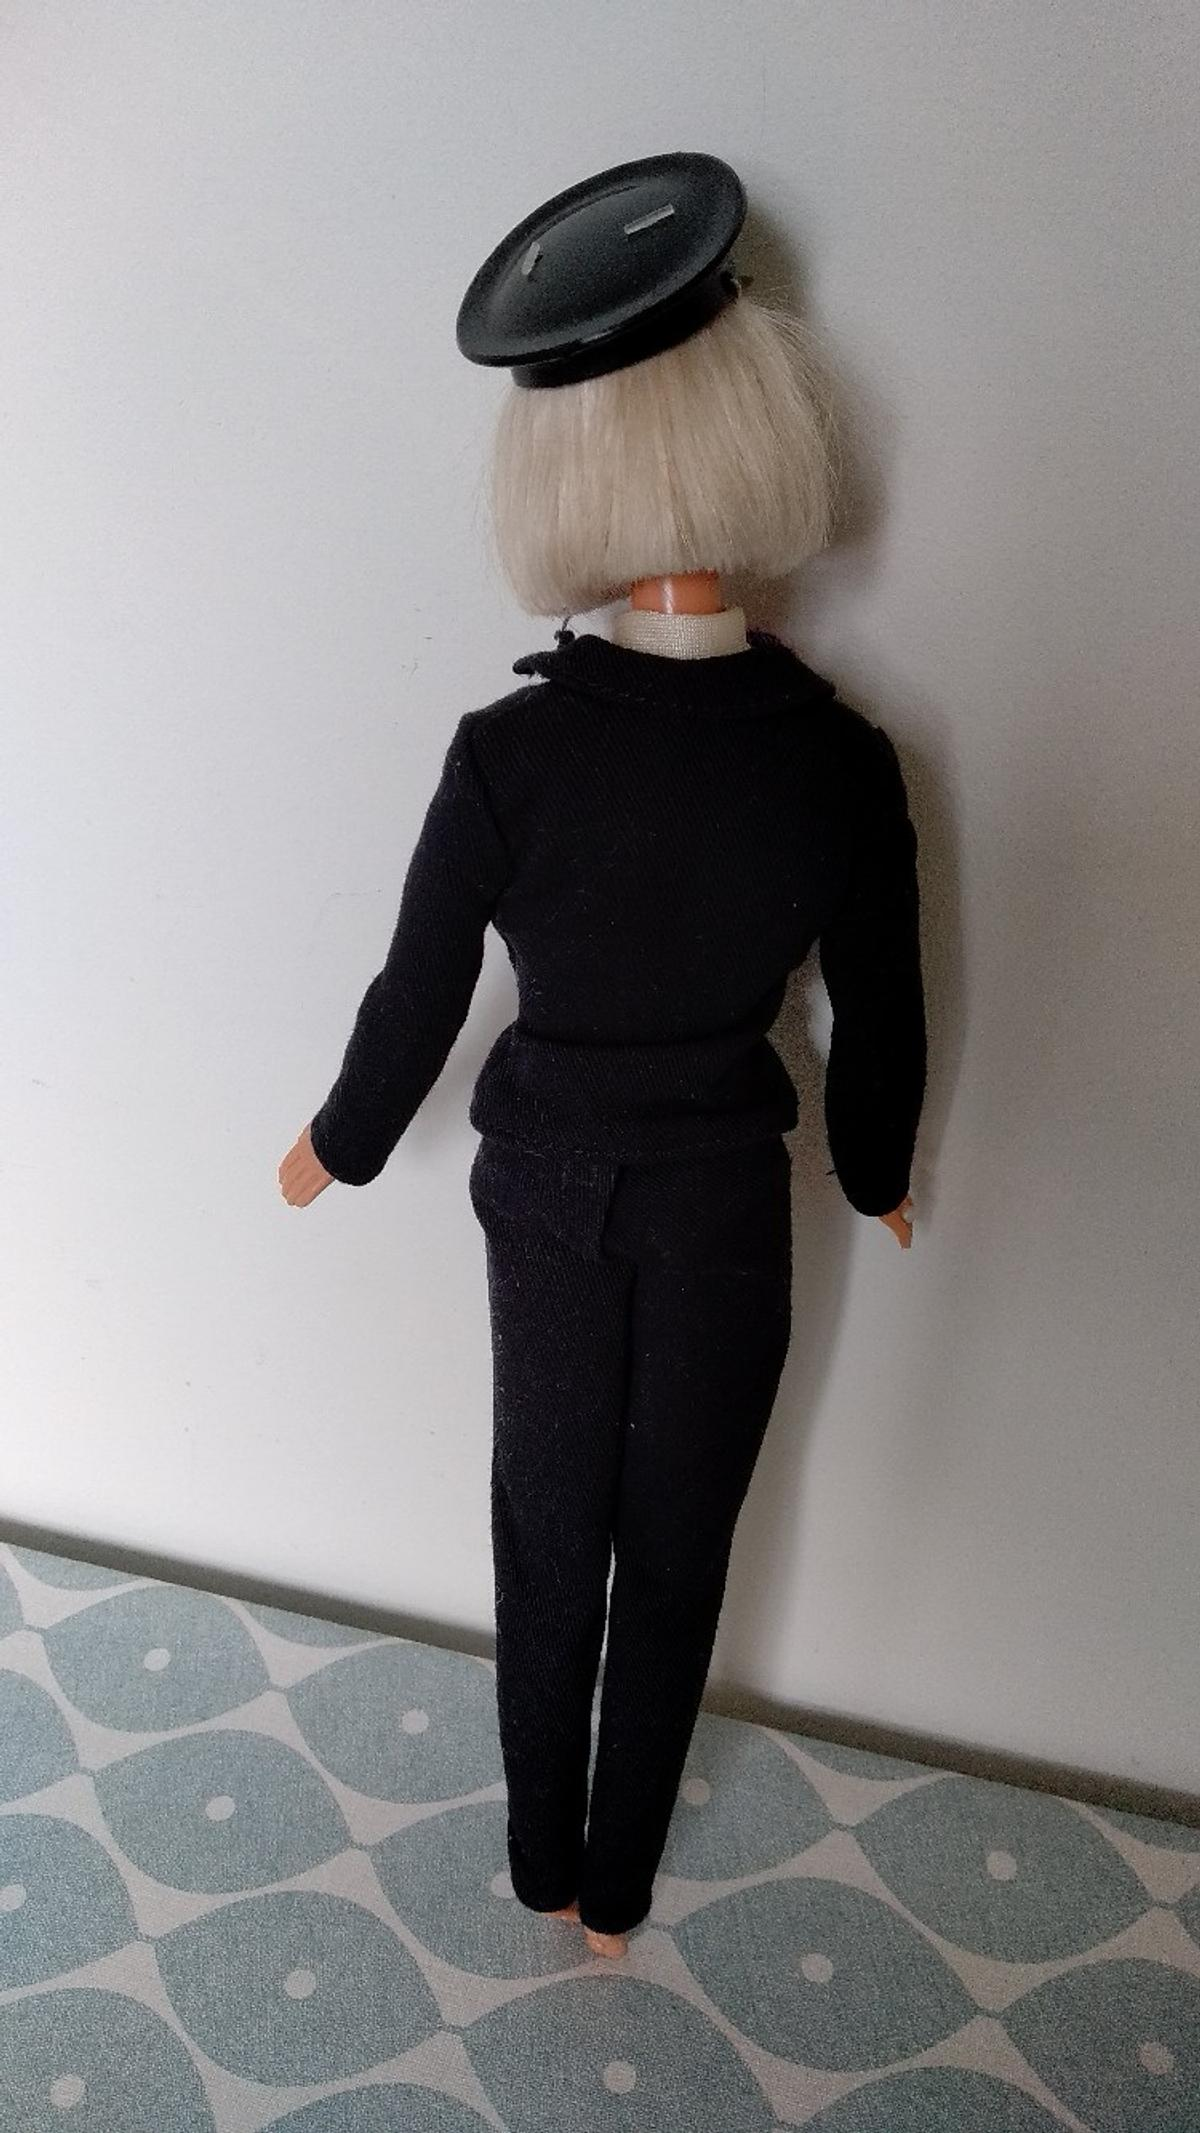 Barbie Pilot doll 1999 in SE4 London for £15.00 for sale